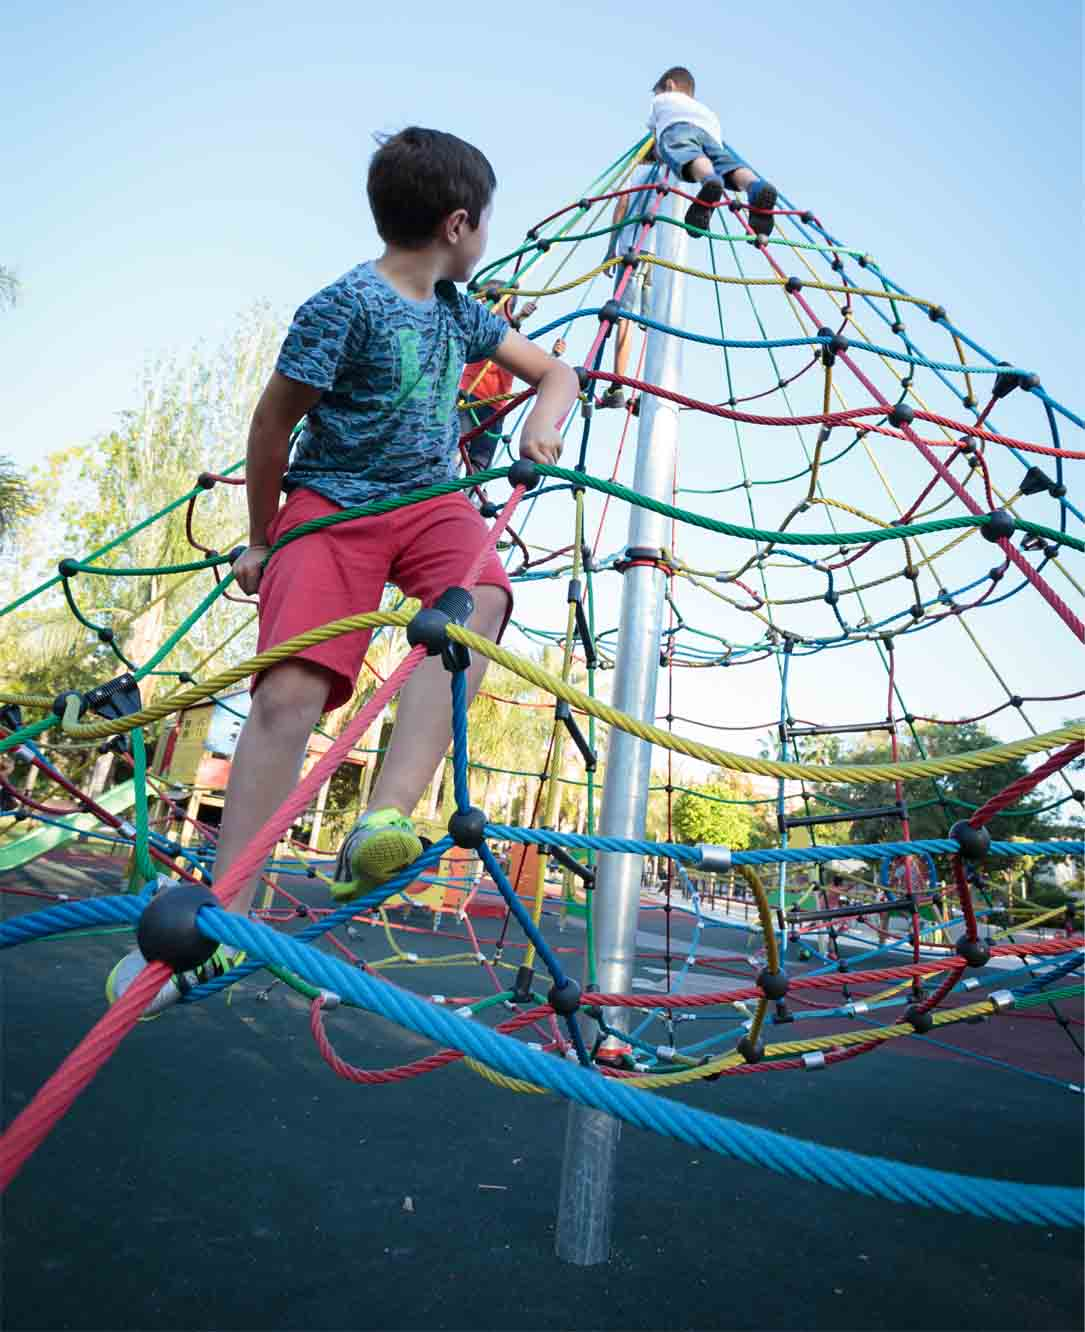 boys playing in a climbing pyramid in children's playgrounds